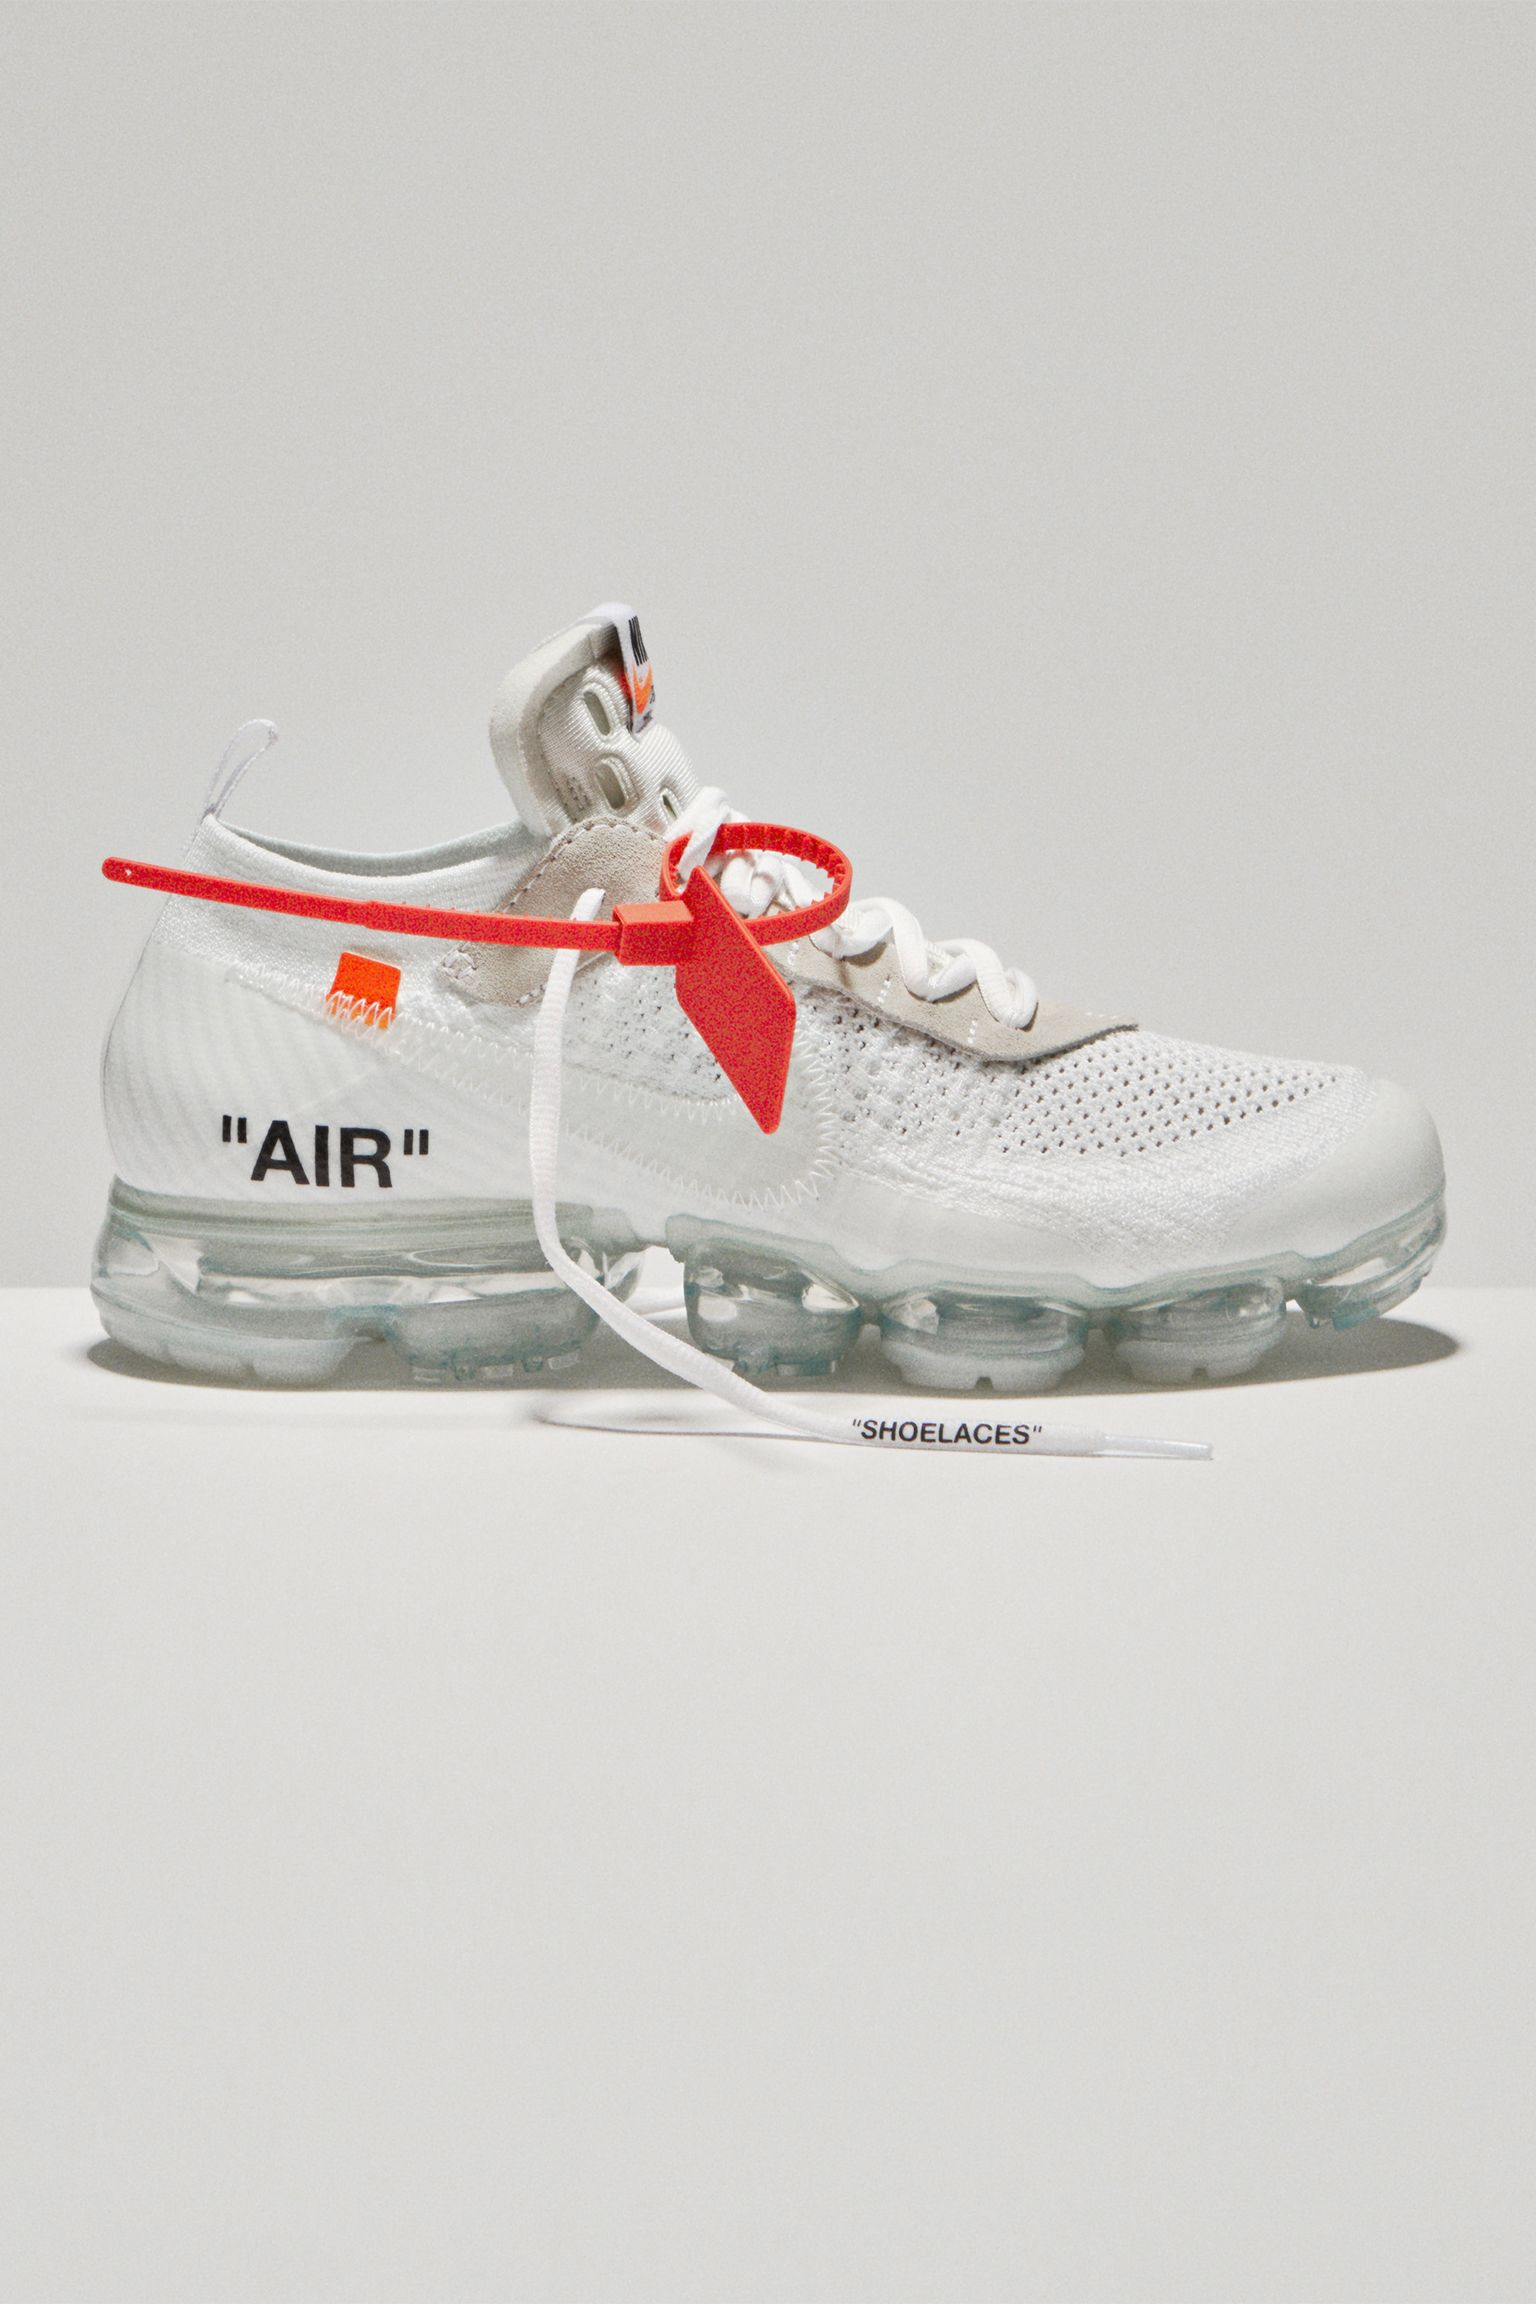 Nike The Ten Air Vapormax Off-White 'White' Release Date